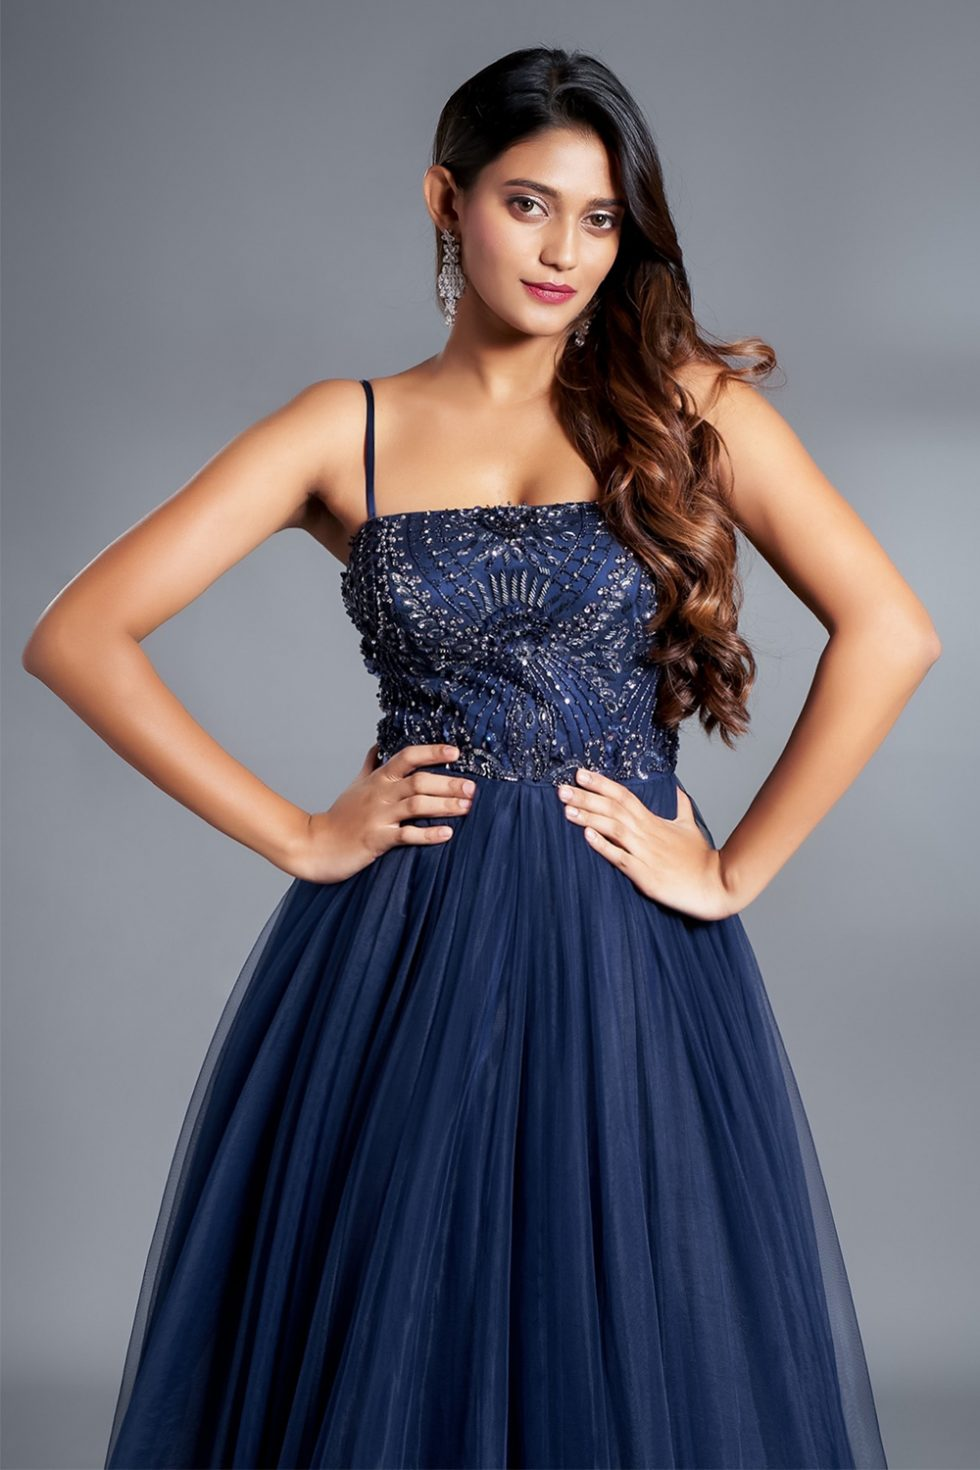 Navy blue classic tulle gown with a hand embroidered bodice and silver details.